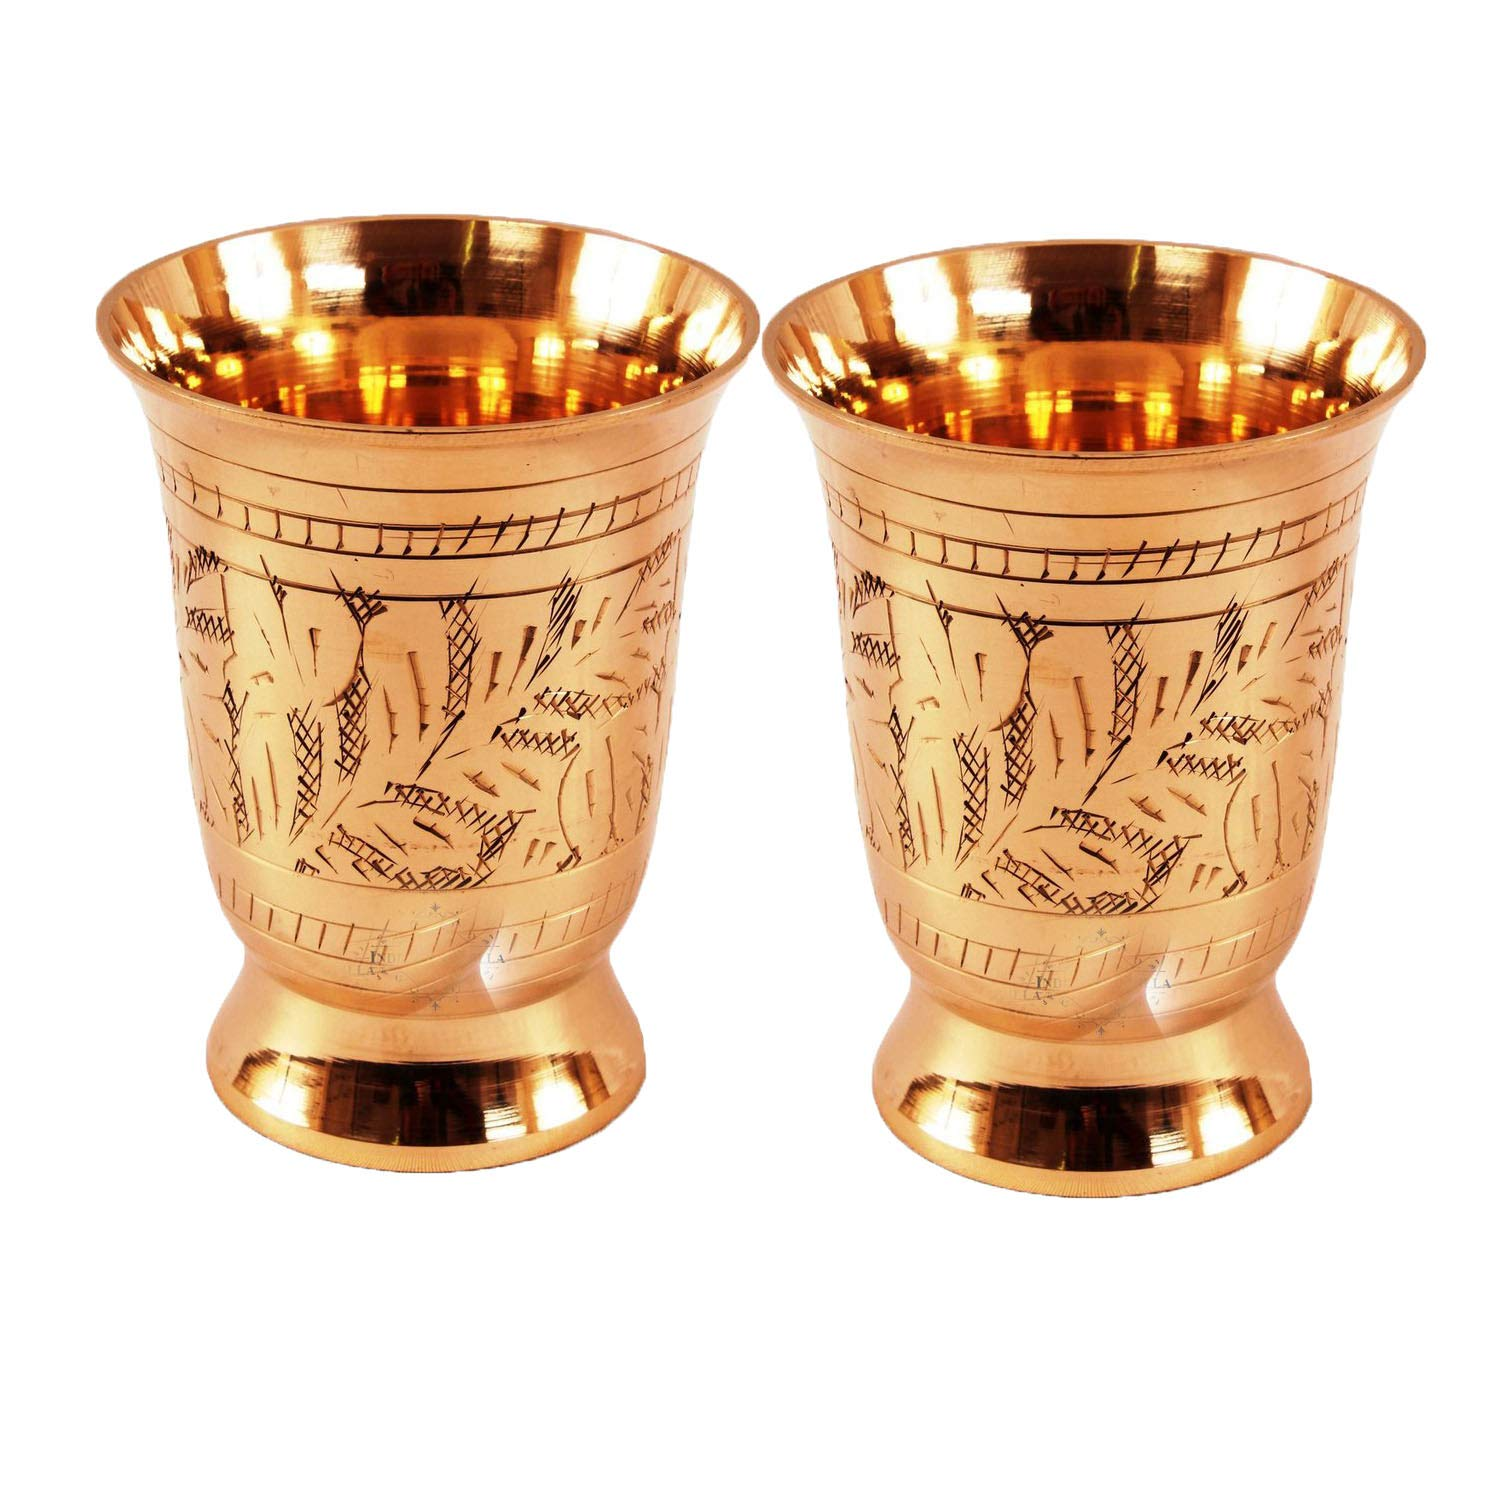 Set Of 2 Mughlai Style Designer Brass Mint Julep Cup Goblet Tumbler Capacity 8.5 Ounce Each